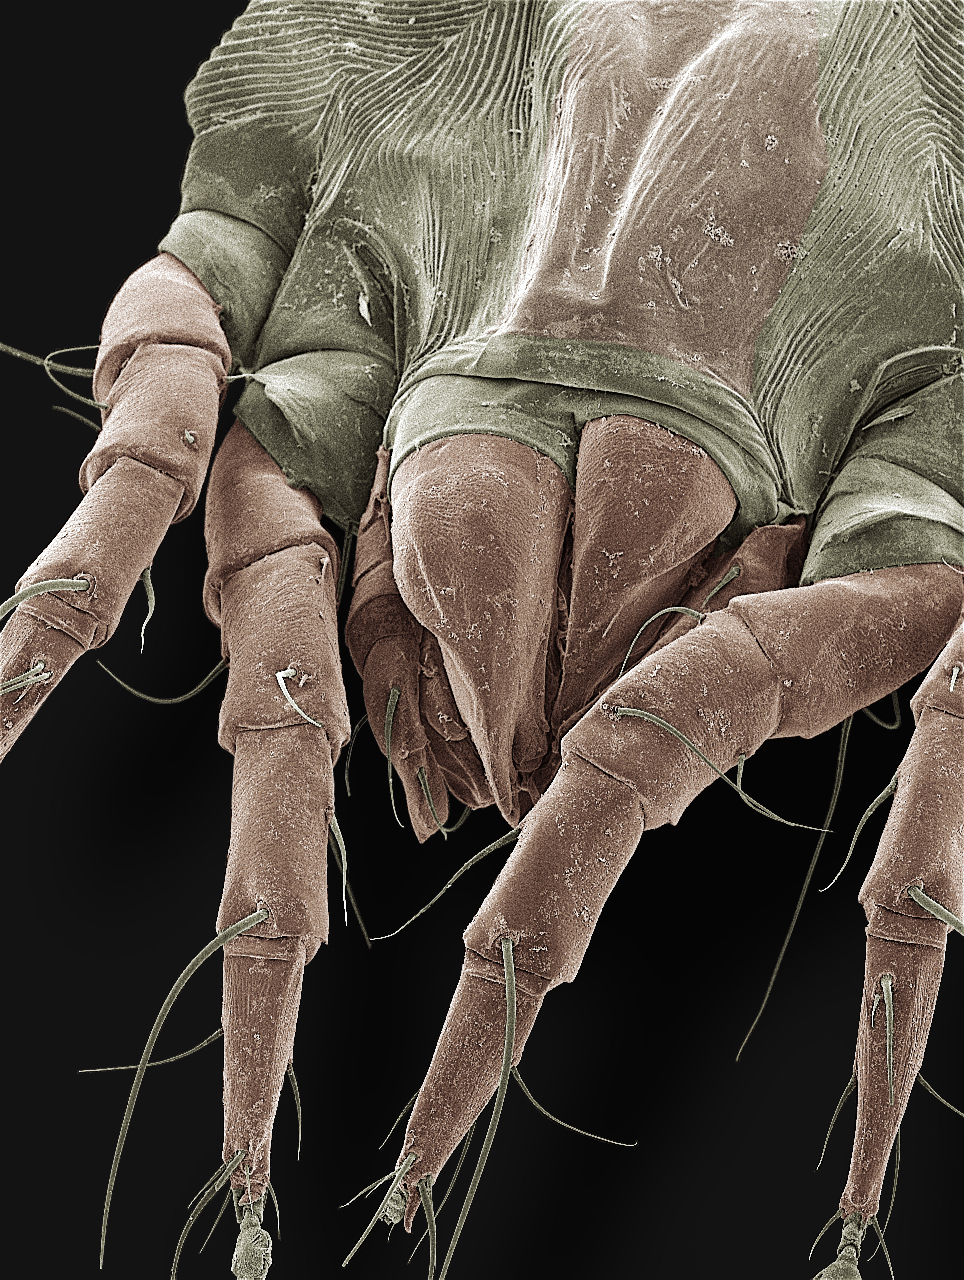 A scanning electron microscope closeup (magnification X550) of an American house dust mite, showing four of its eight legs, as well as the mouthparts. Image credit: Ellen Foot Perkowski